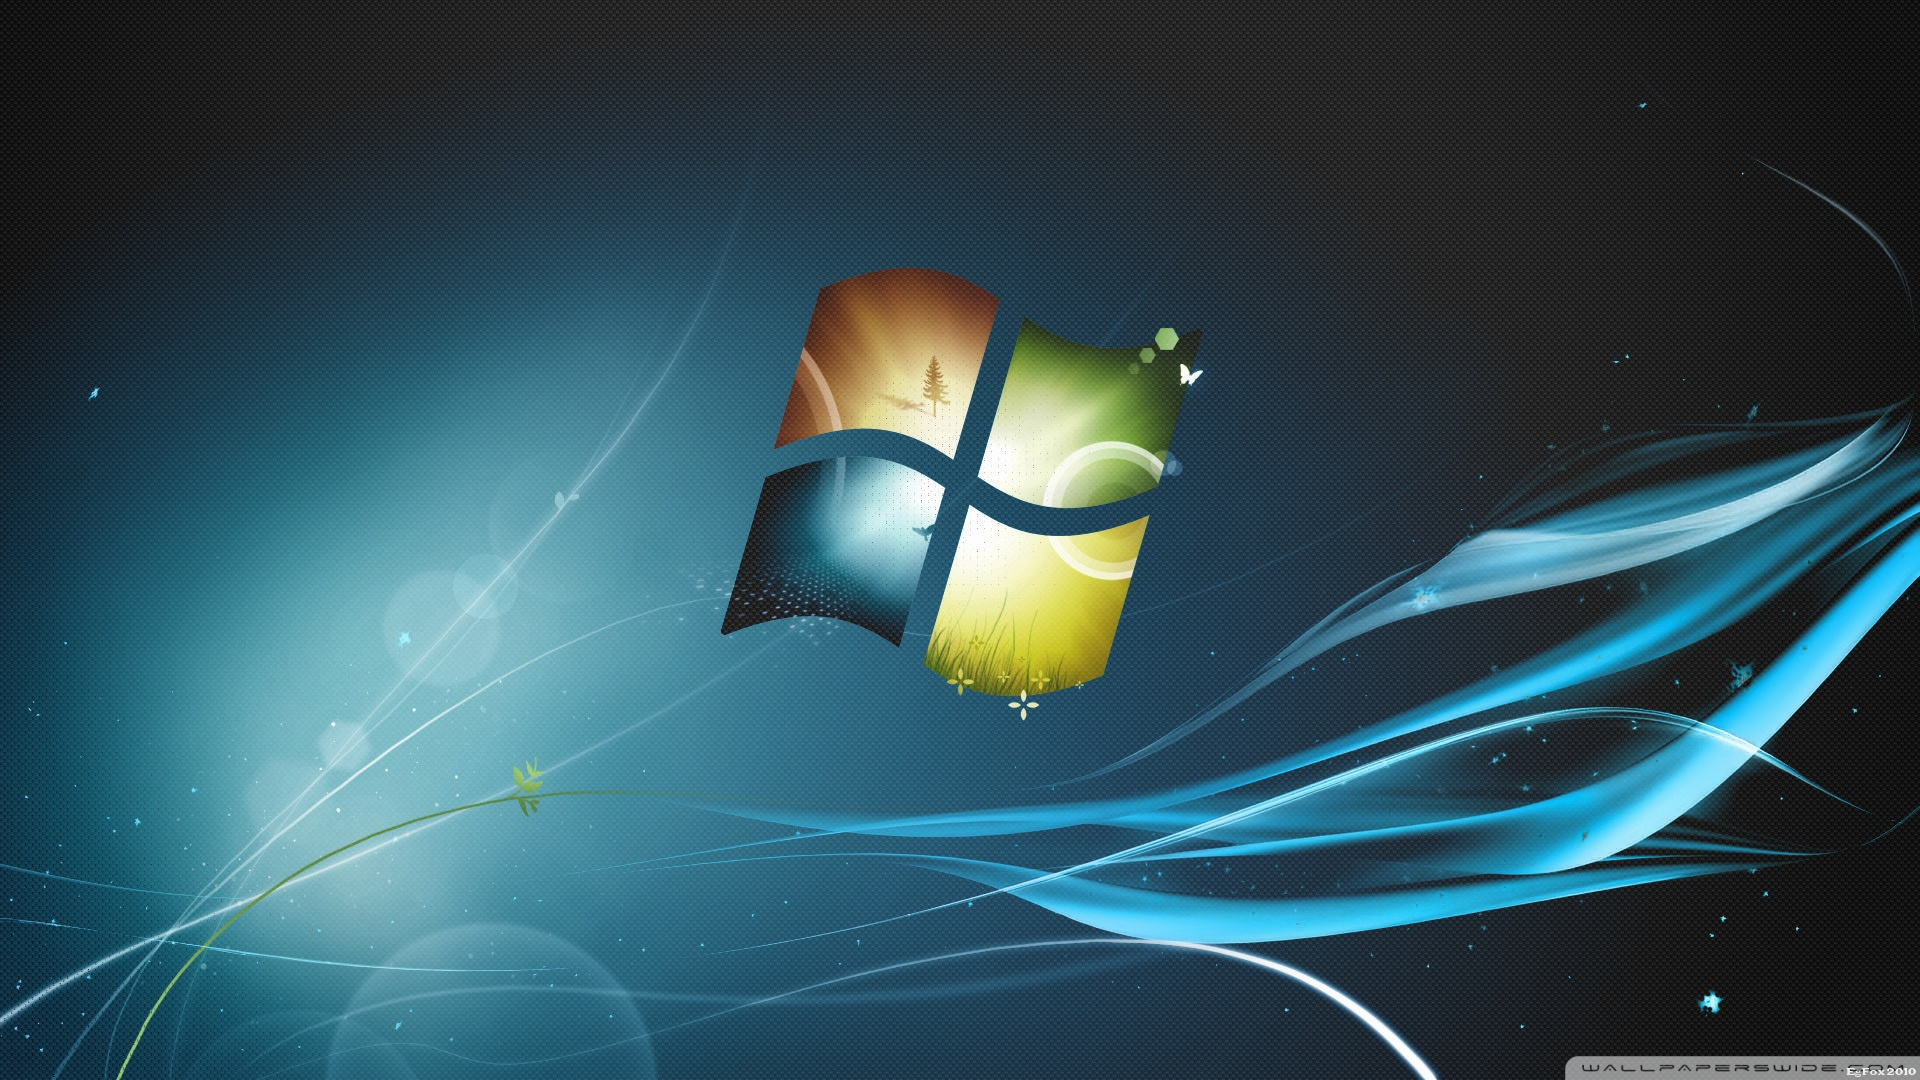 Windows Hd Wallpapers 1080p Posted By Ethan Anderson